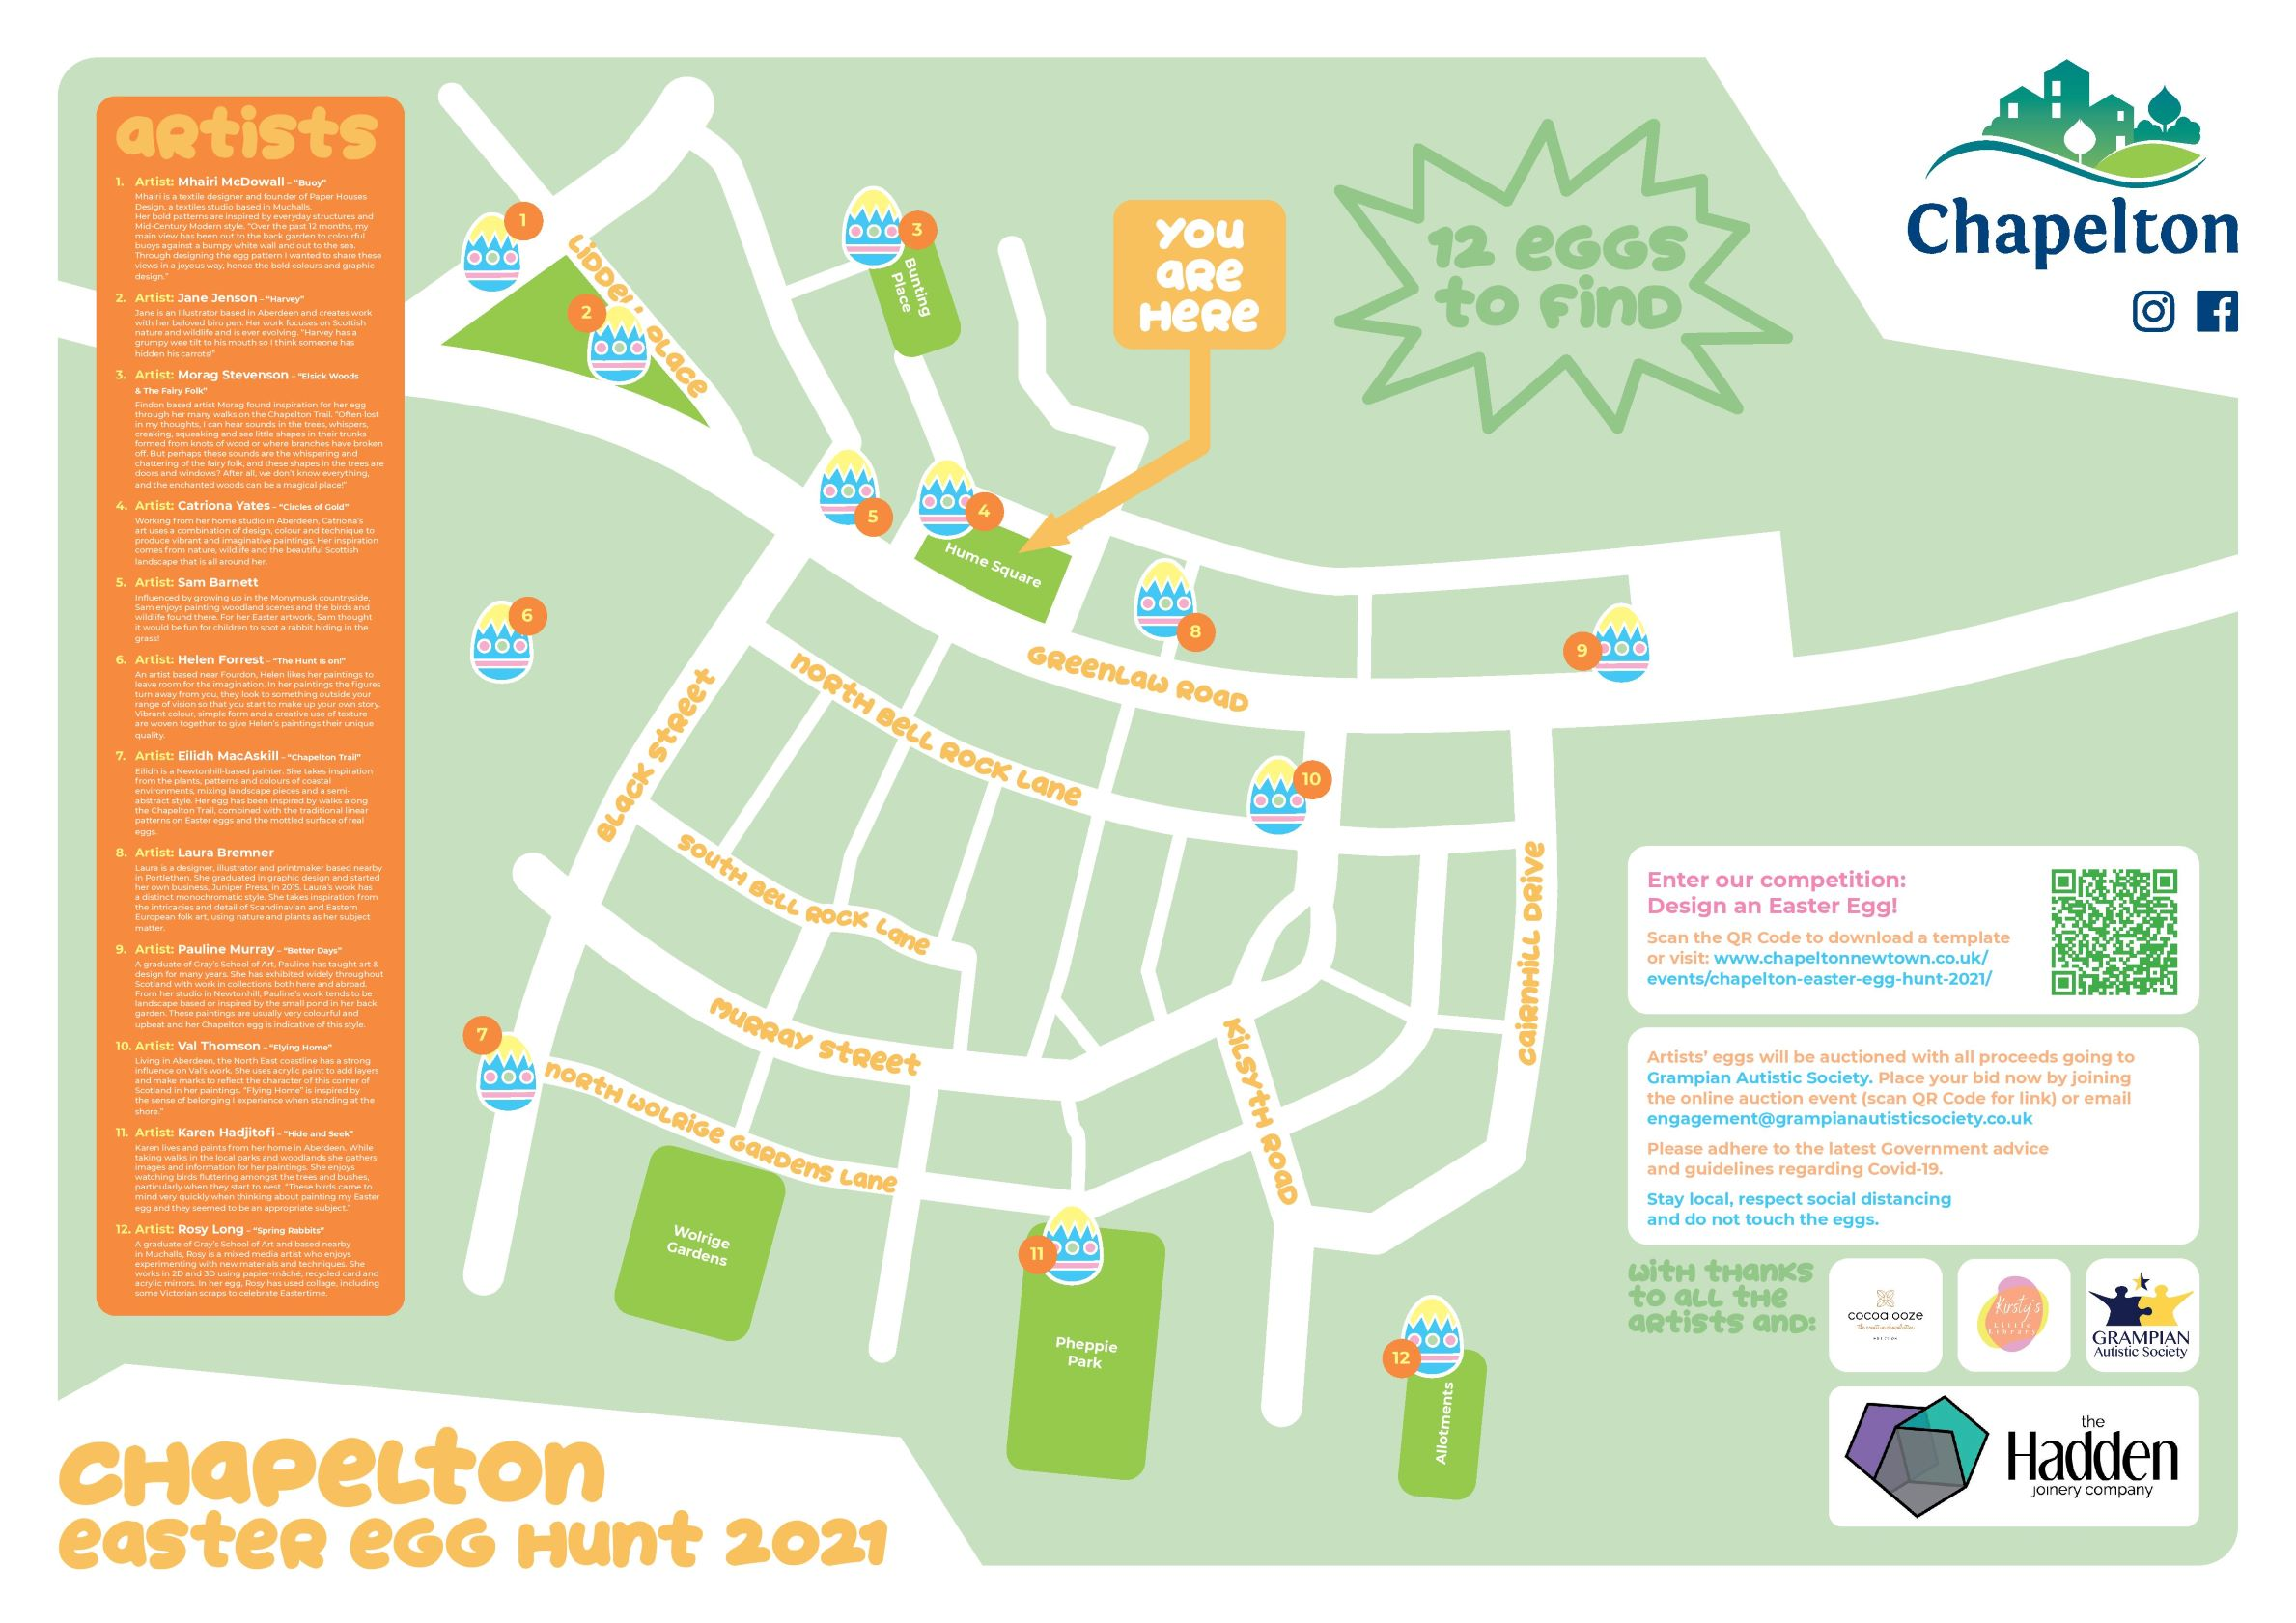 Chapelton Easter egg hunt map with artists